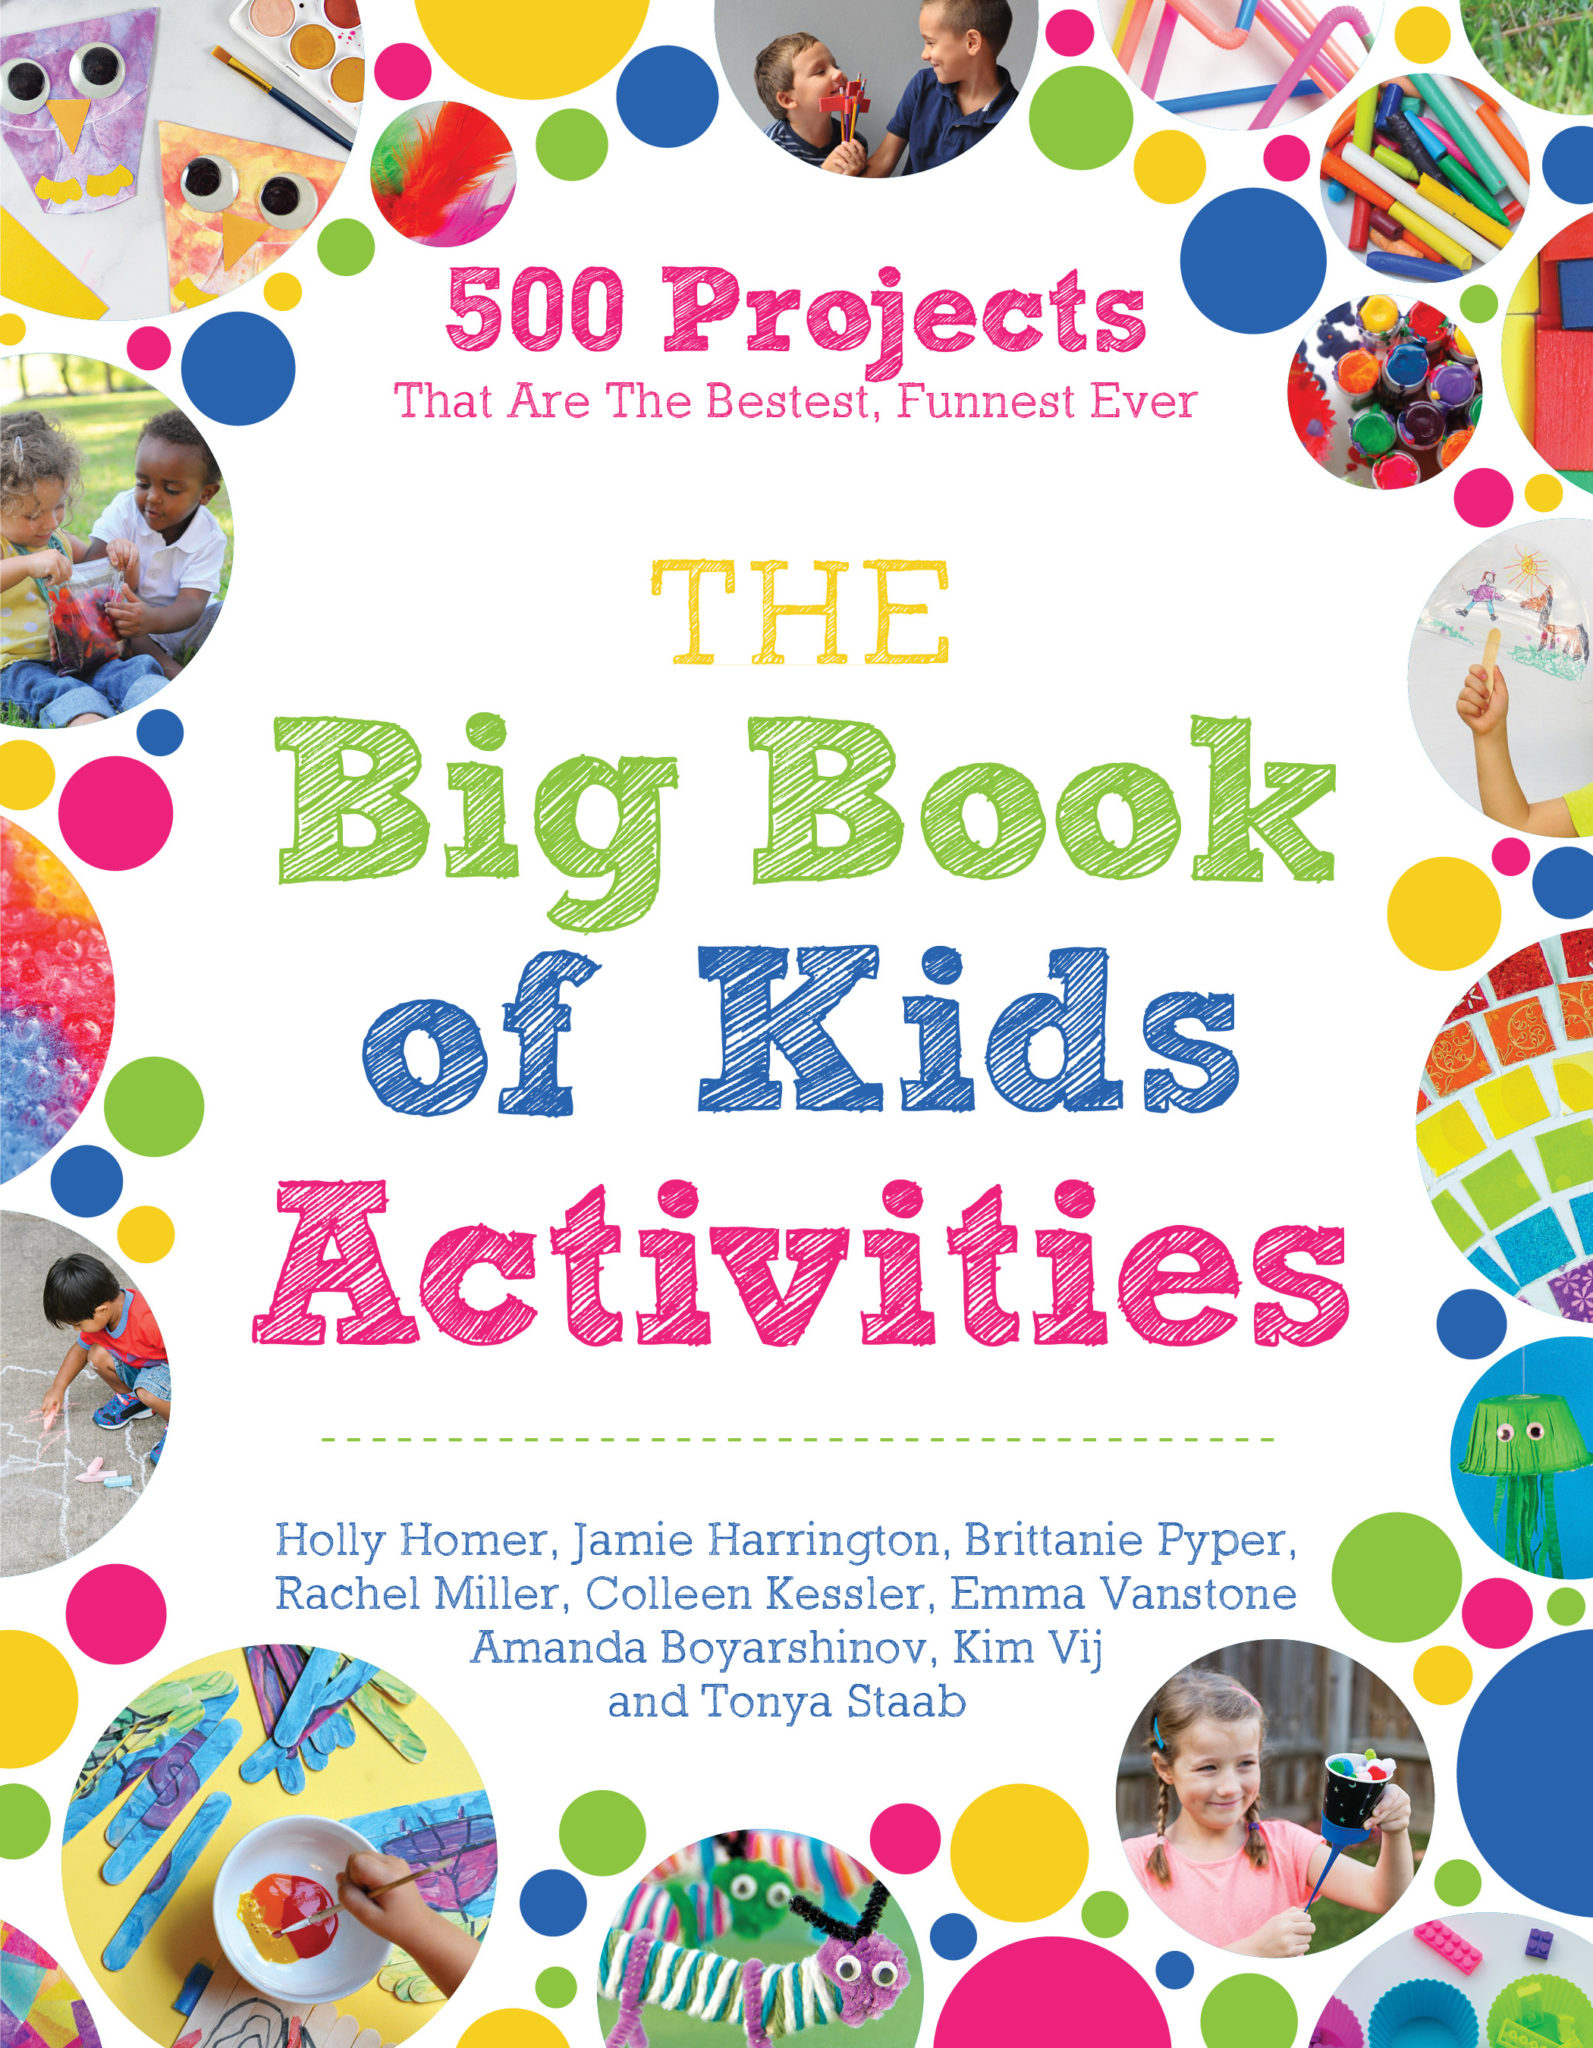 The Big Book of Kids Activities with 500 projects for kids to do at home.